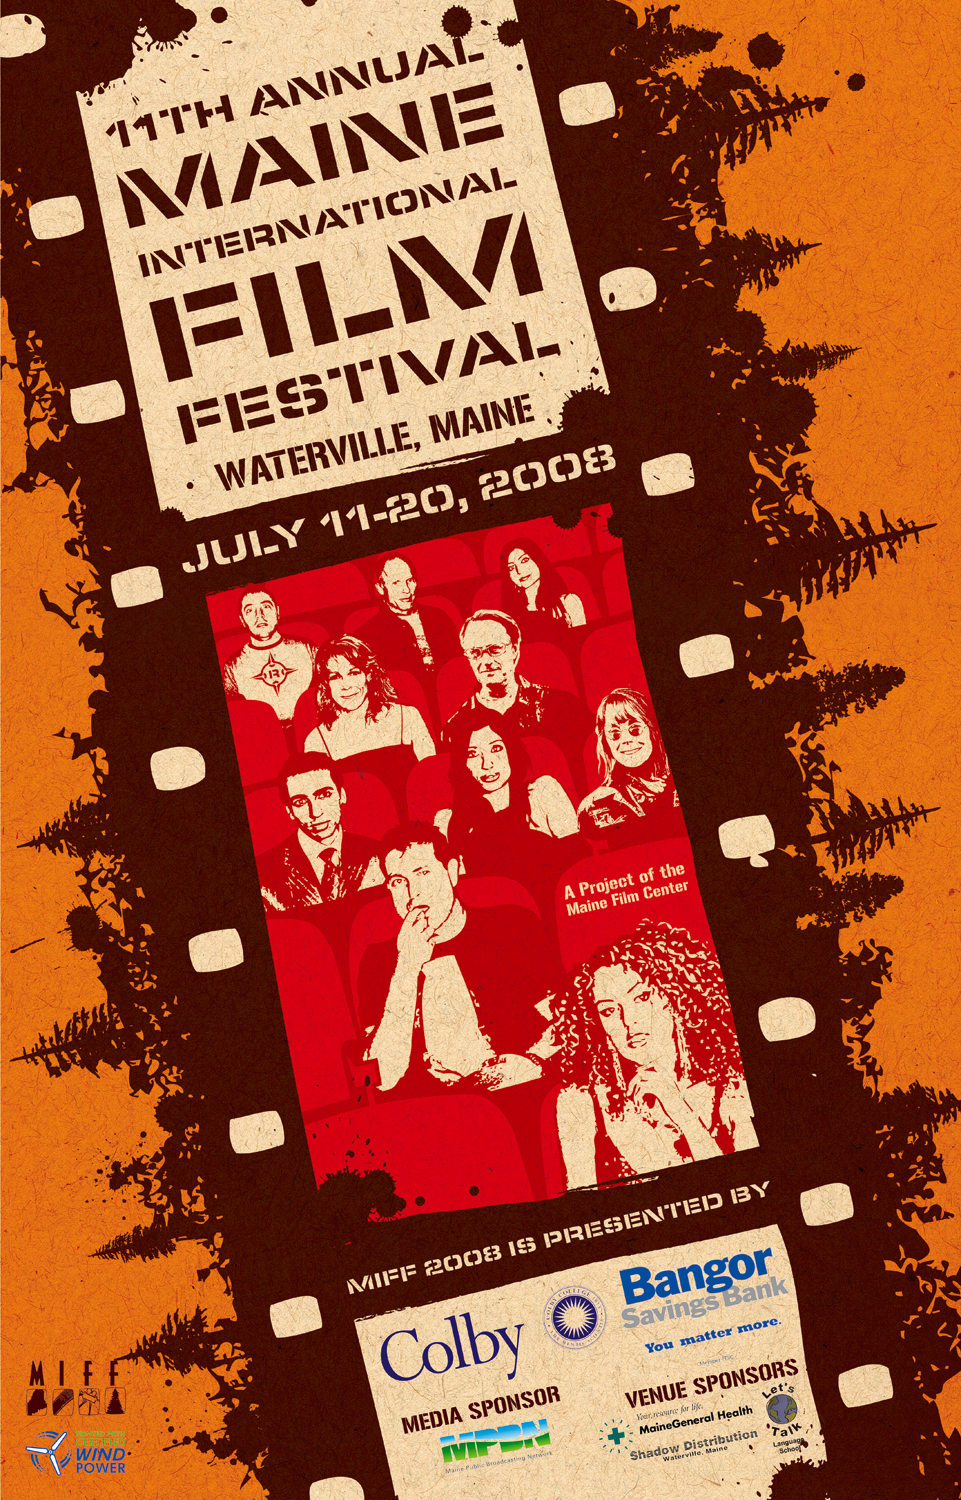 MIFF 2008 Poster